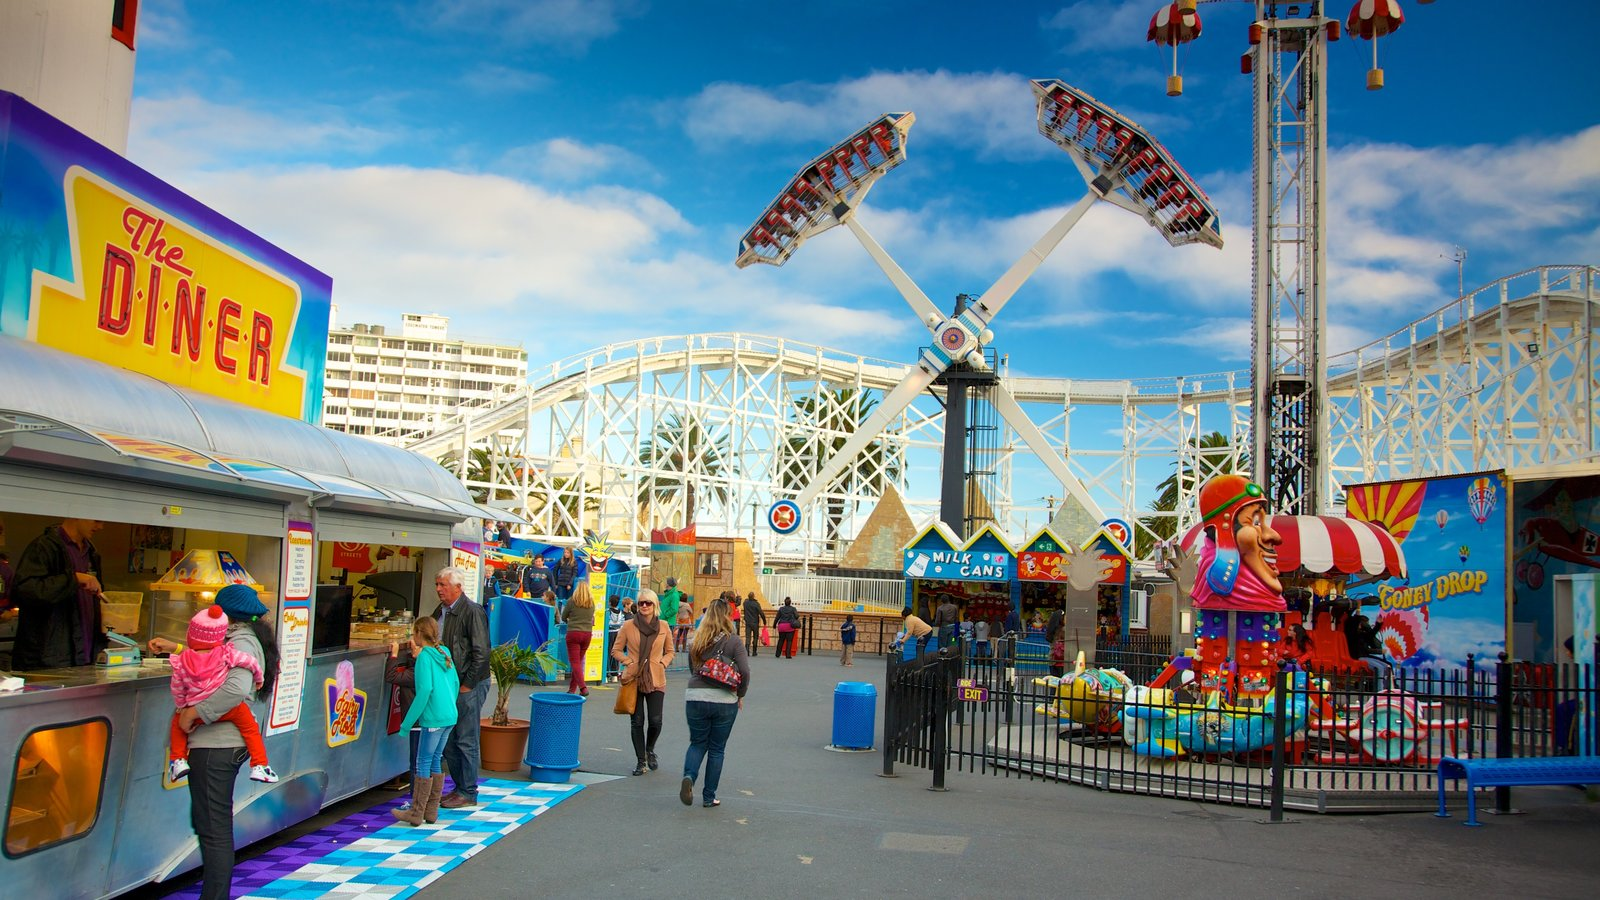 Luna Park showing rides and signage as well as a large group of people